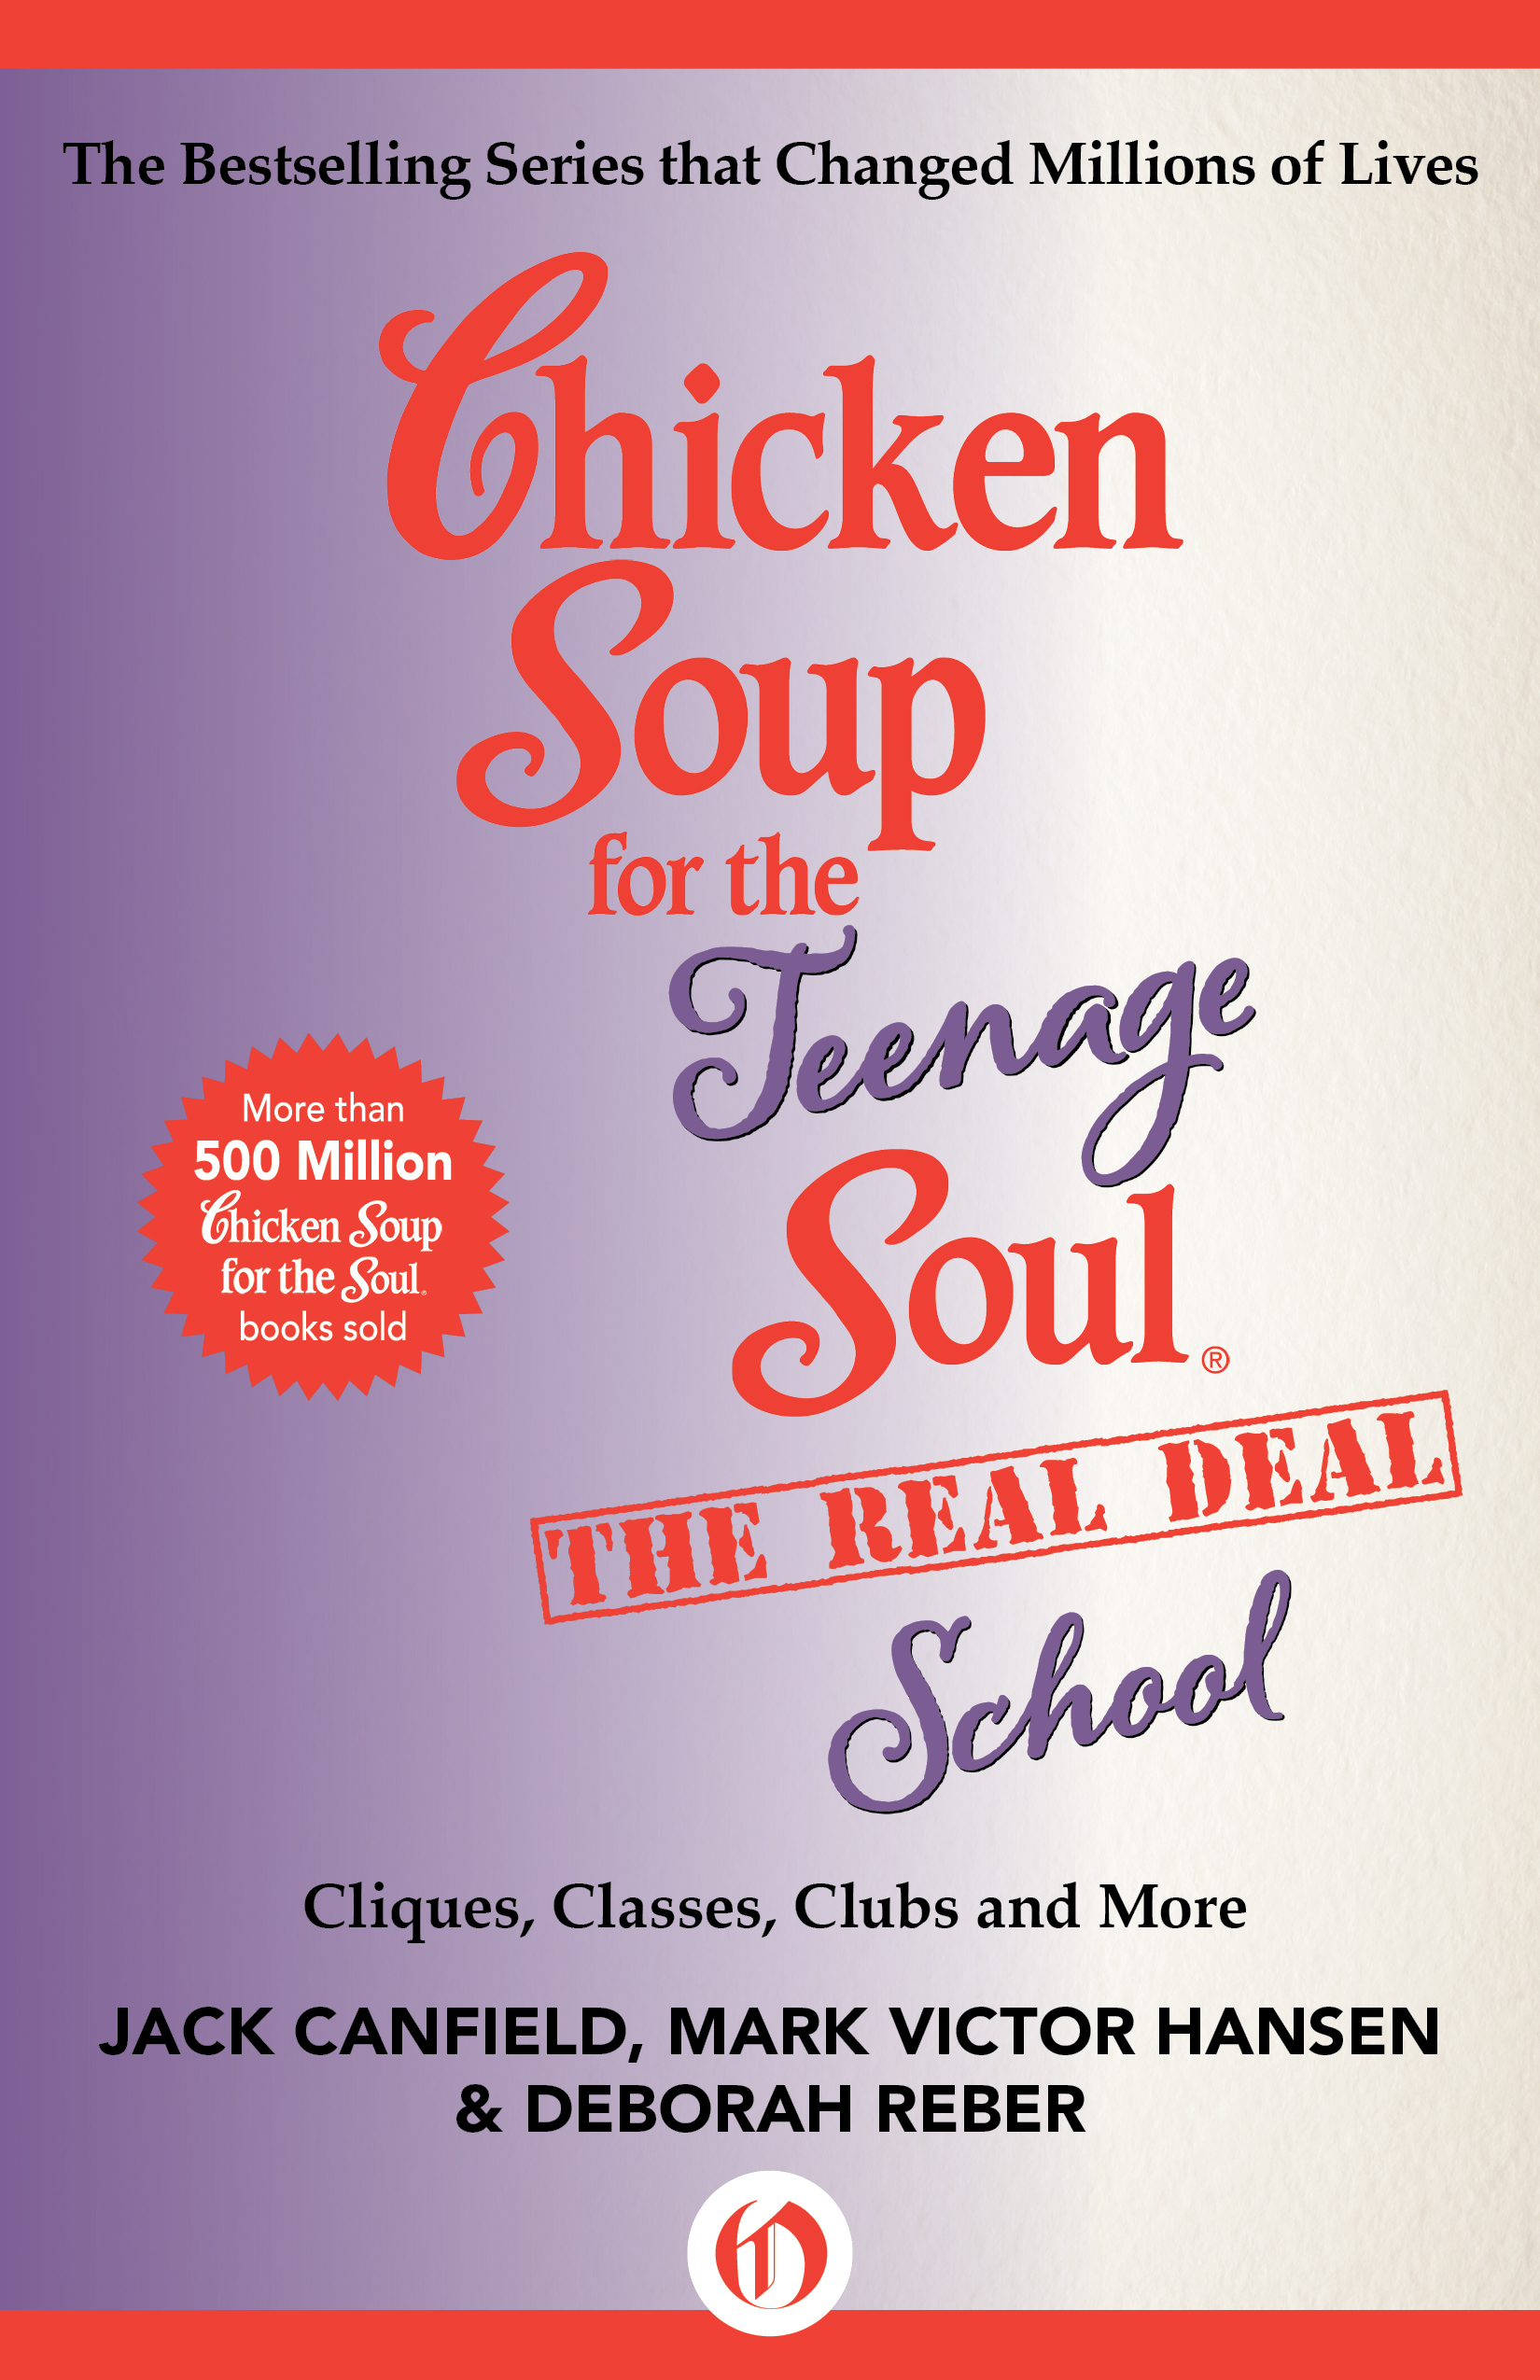 Chicken Soup for the Teenage Soul The Real Deal School By: Deborah Reber,Jack Canfield,Mark Victor Hansen